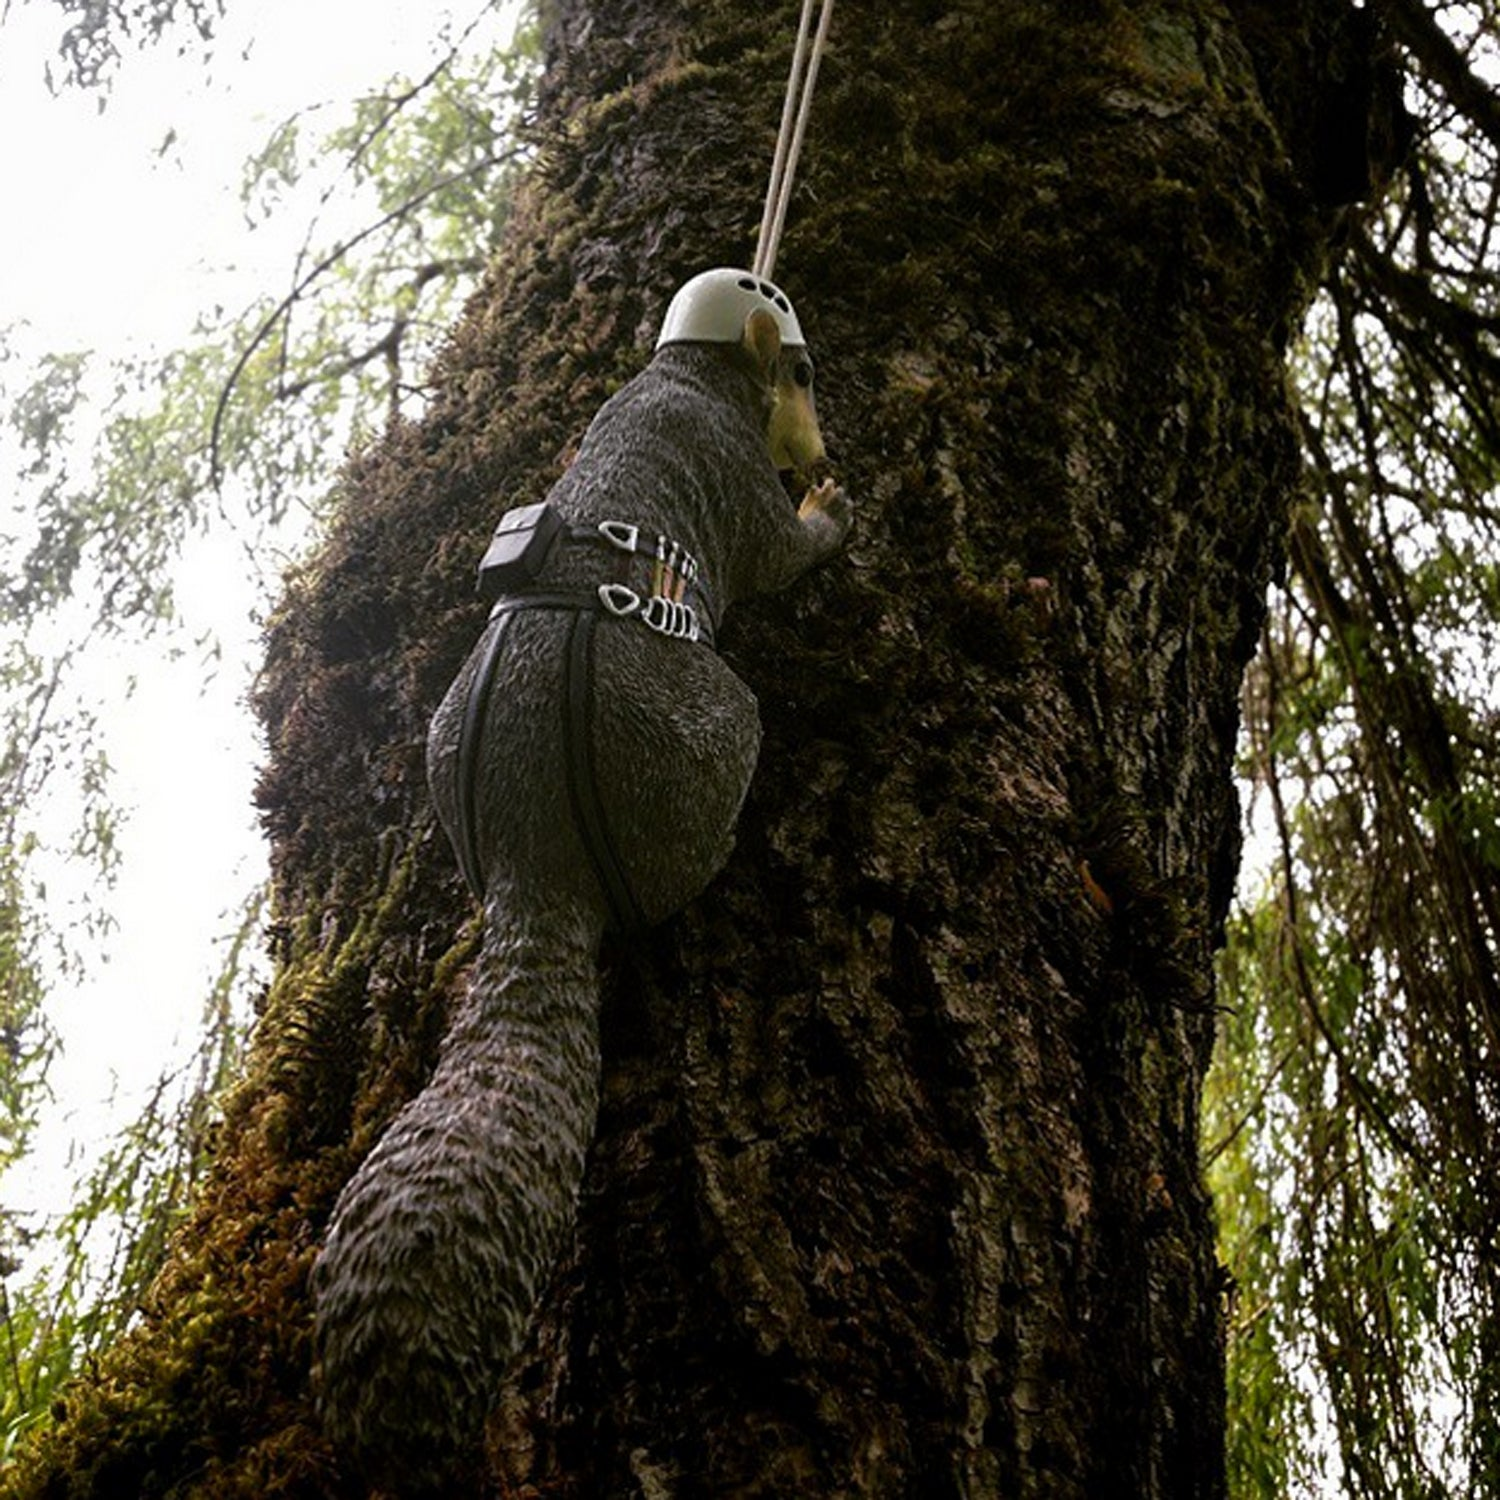 Because squirrels need climbing gear.....